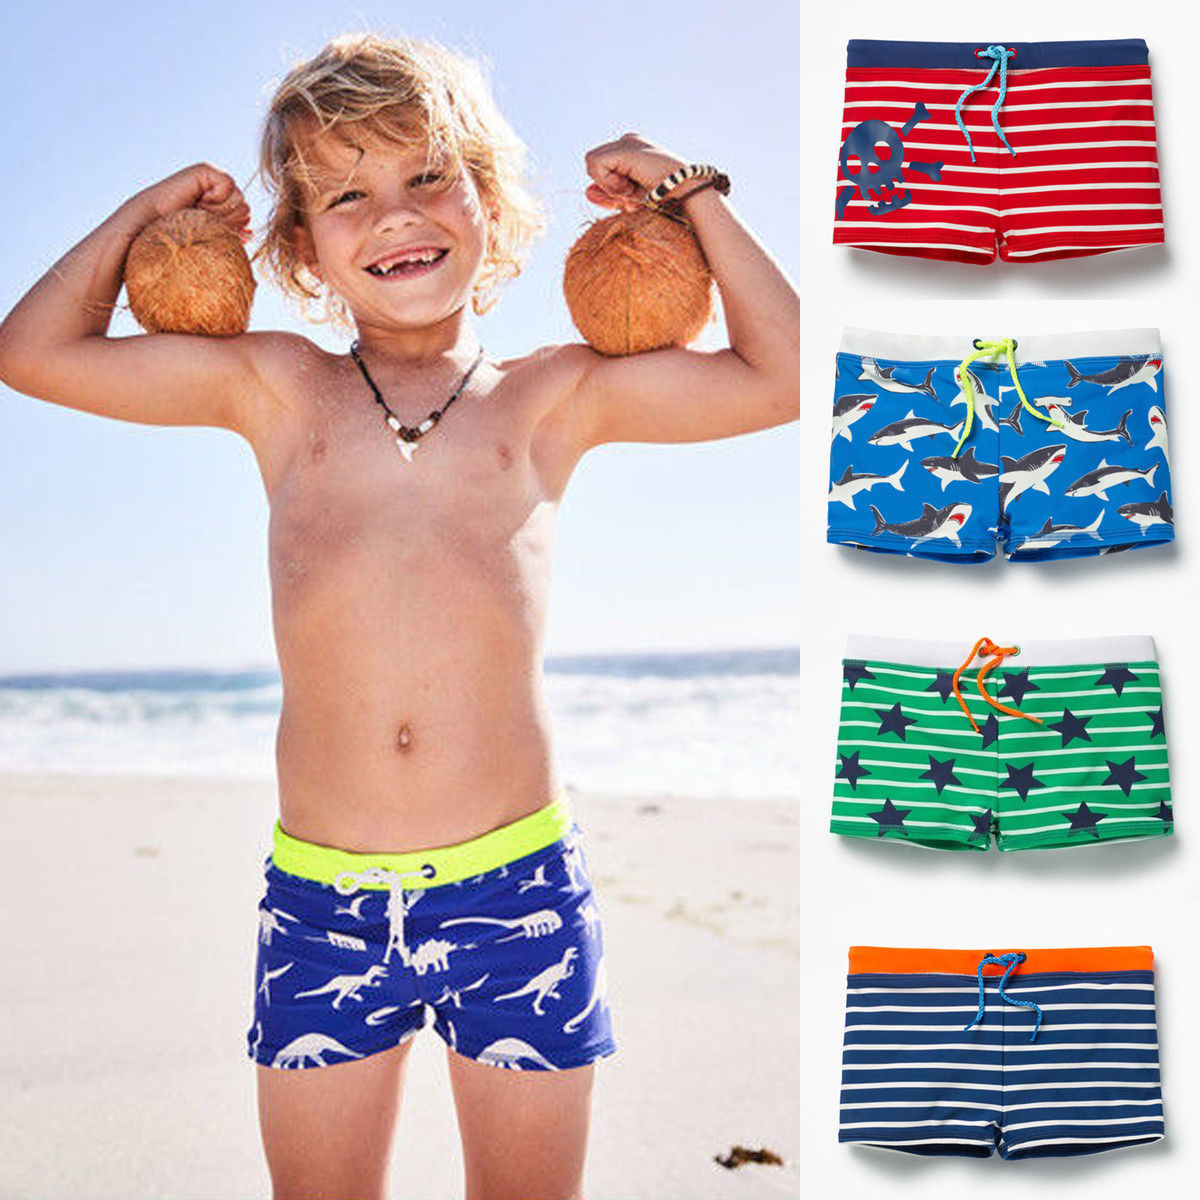 Swimming Shorts Bathing-Suit Cool Toddler Striped Beach Summer Boy Kid Star One-Piece title=